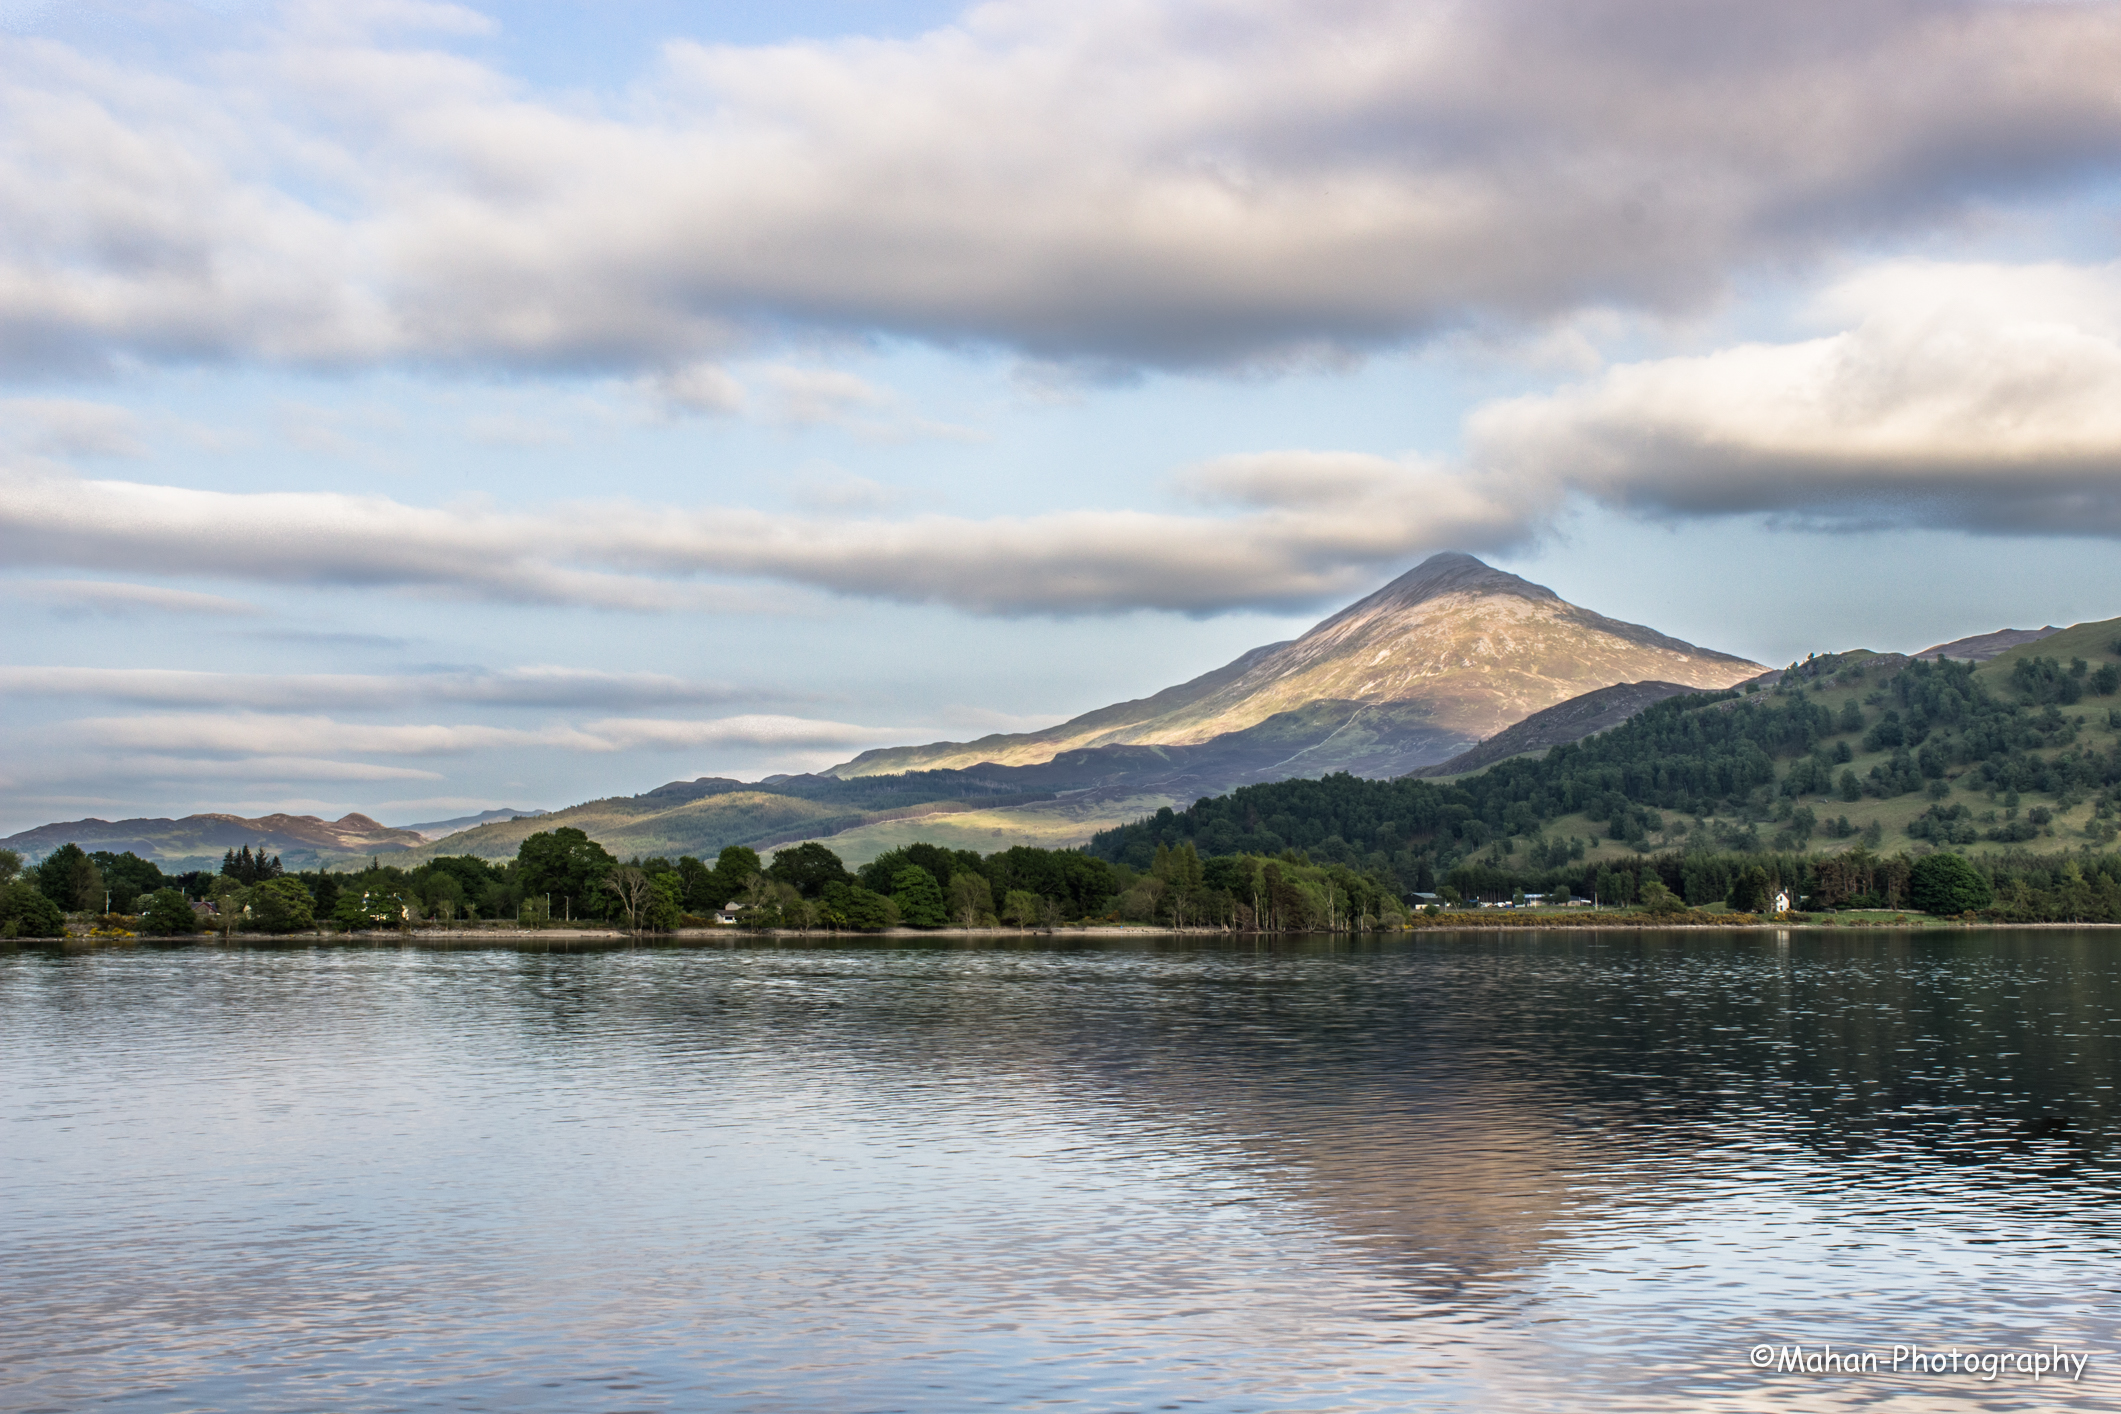 Mount Schiehallion